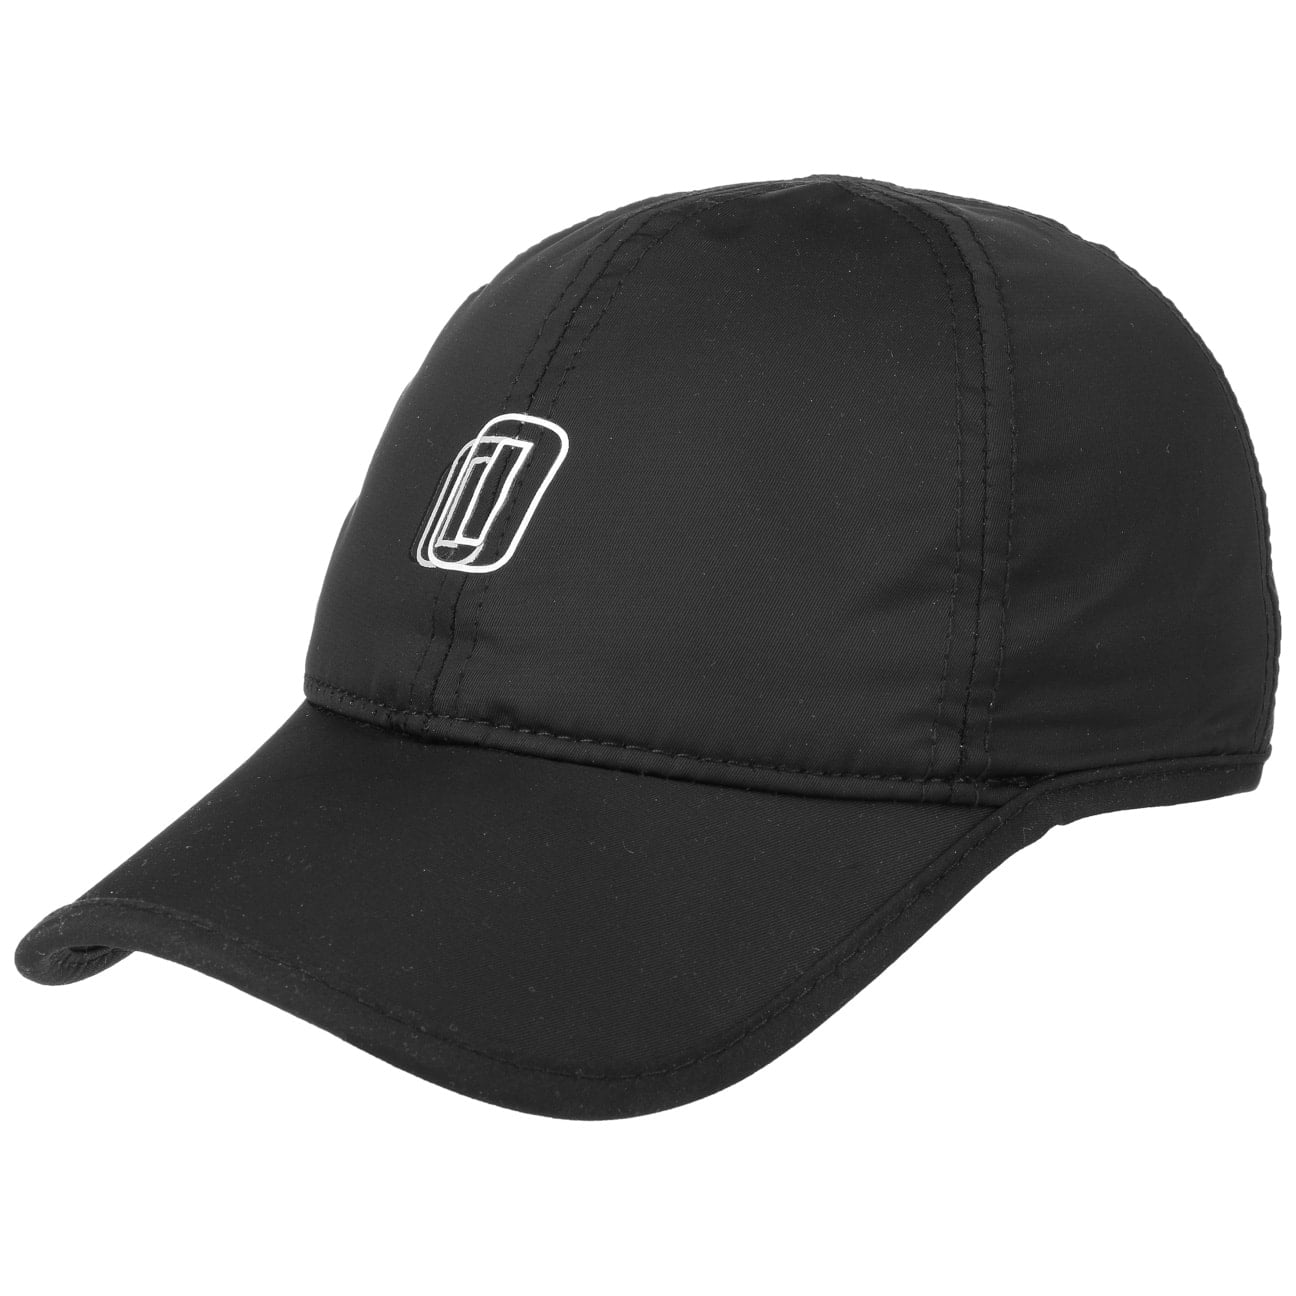 Casquette Pro Tech by Official Headwear  baseball cap